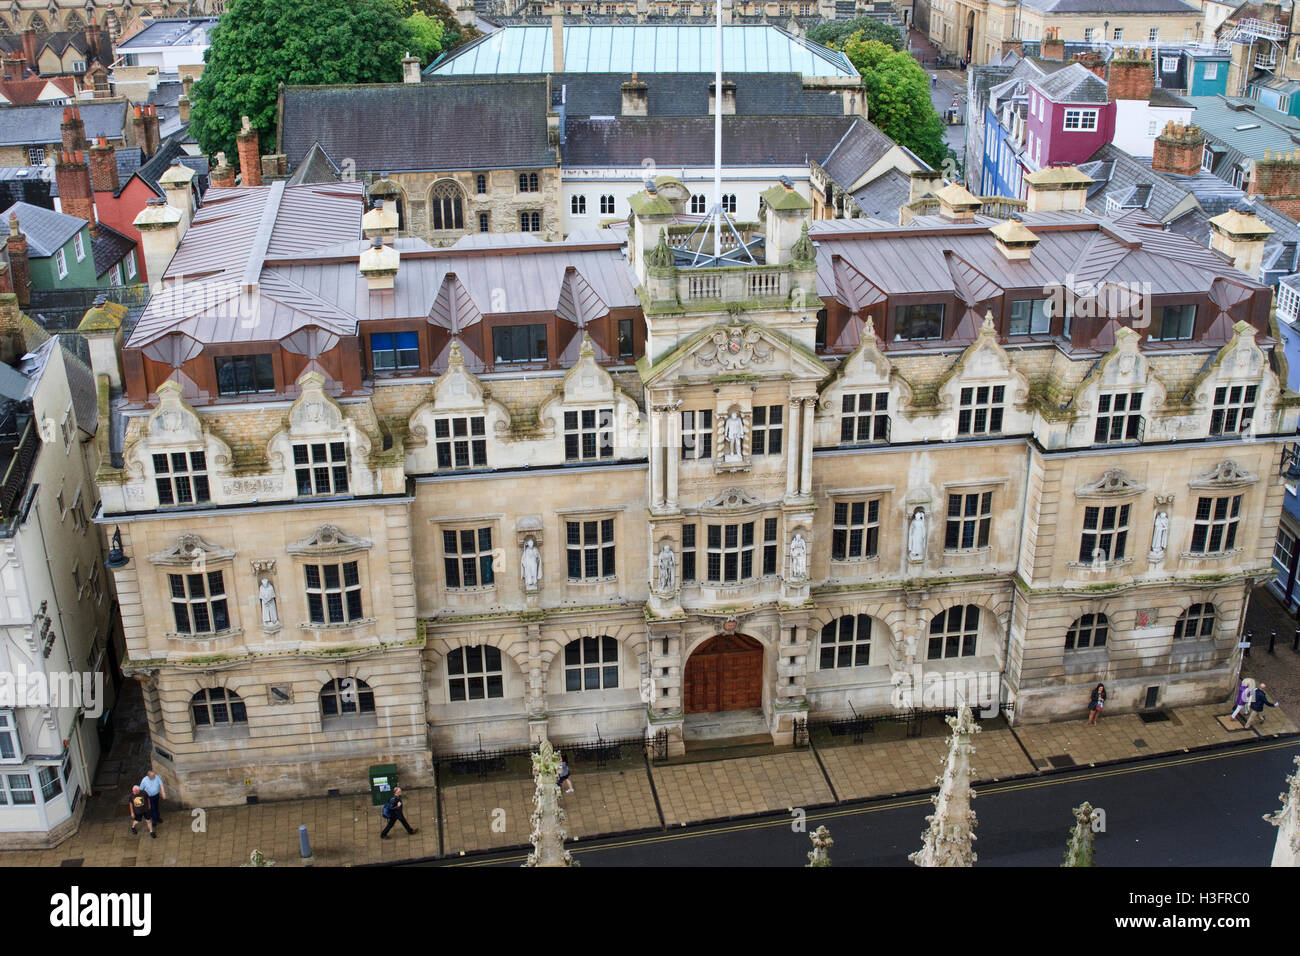 Oriel College, Oxford, as seen from the University Church of St Mary the Virgin. - Stock Image